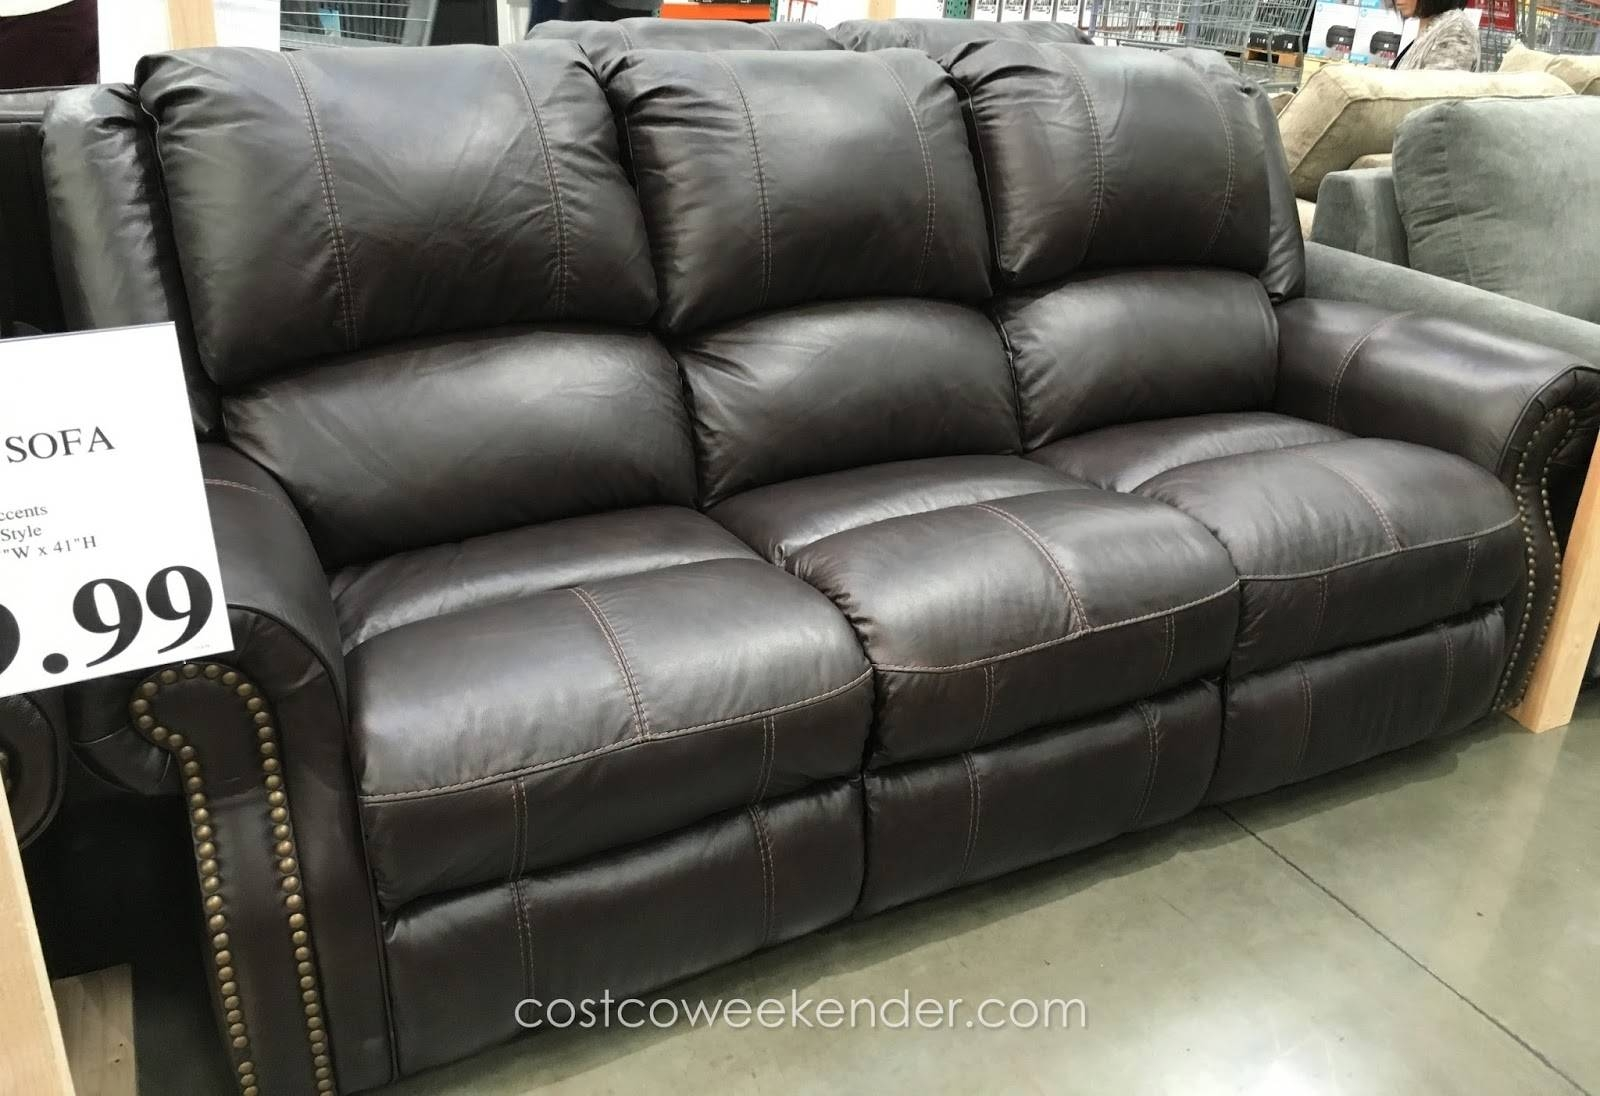 Furnitures: Costco Couch | Leather Sectional Recliner | Reclining inside Costco Leather Sectional Sofas (Image 5 of 15)